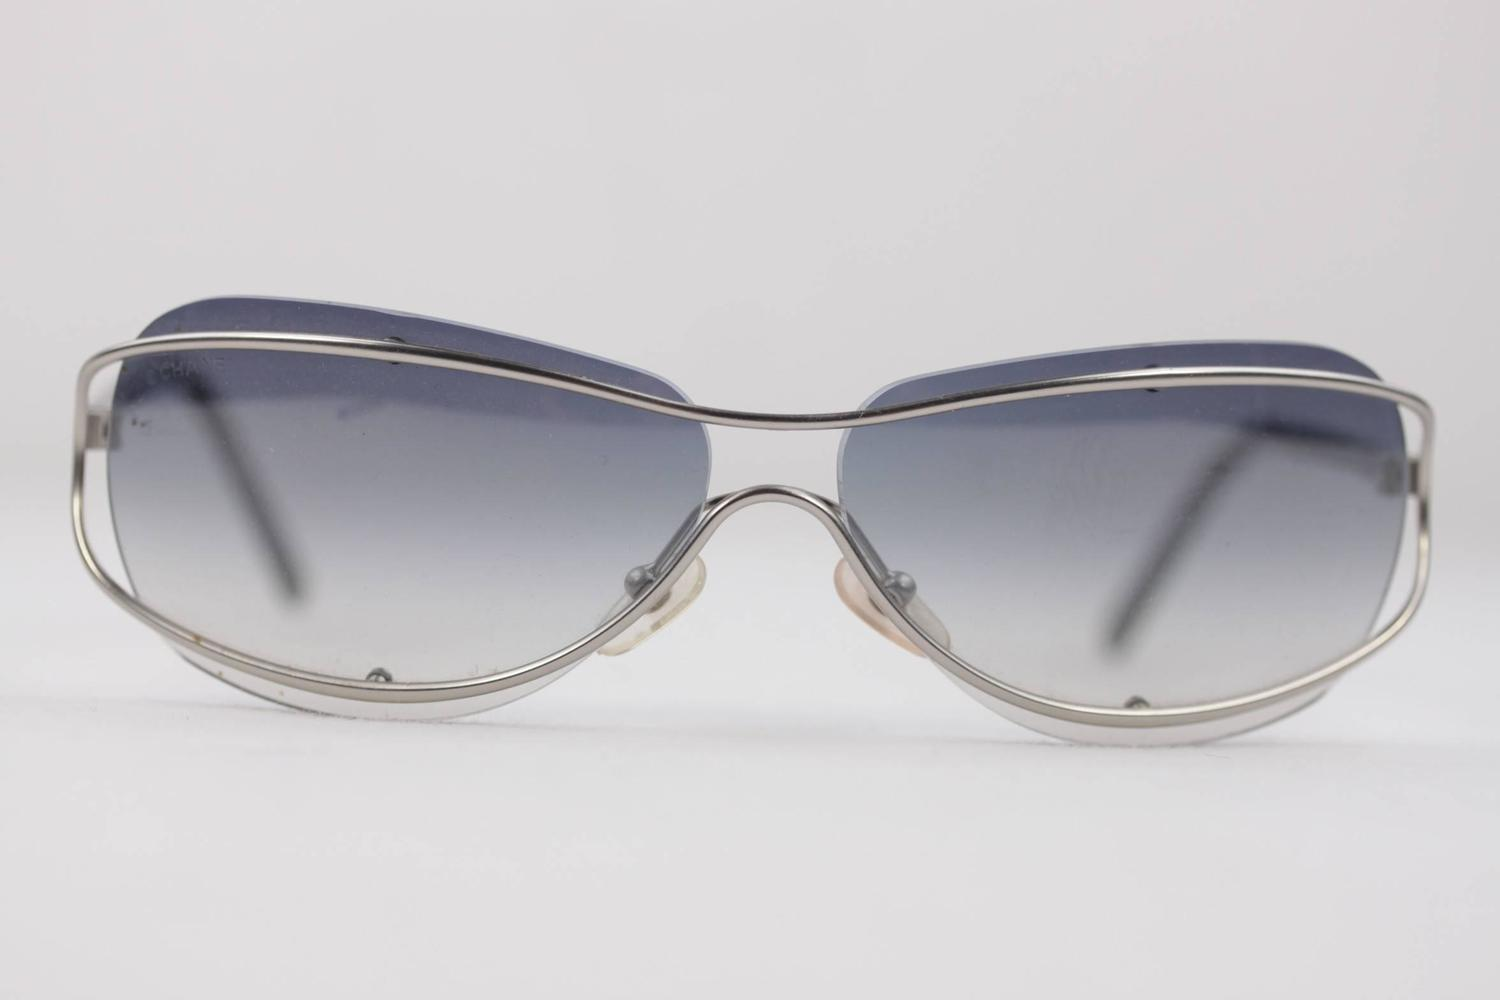 CHANEL Sunglasses 4027 145/55 RIMLESS FRAME Gradient ...